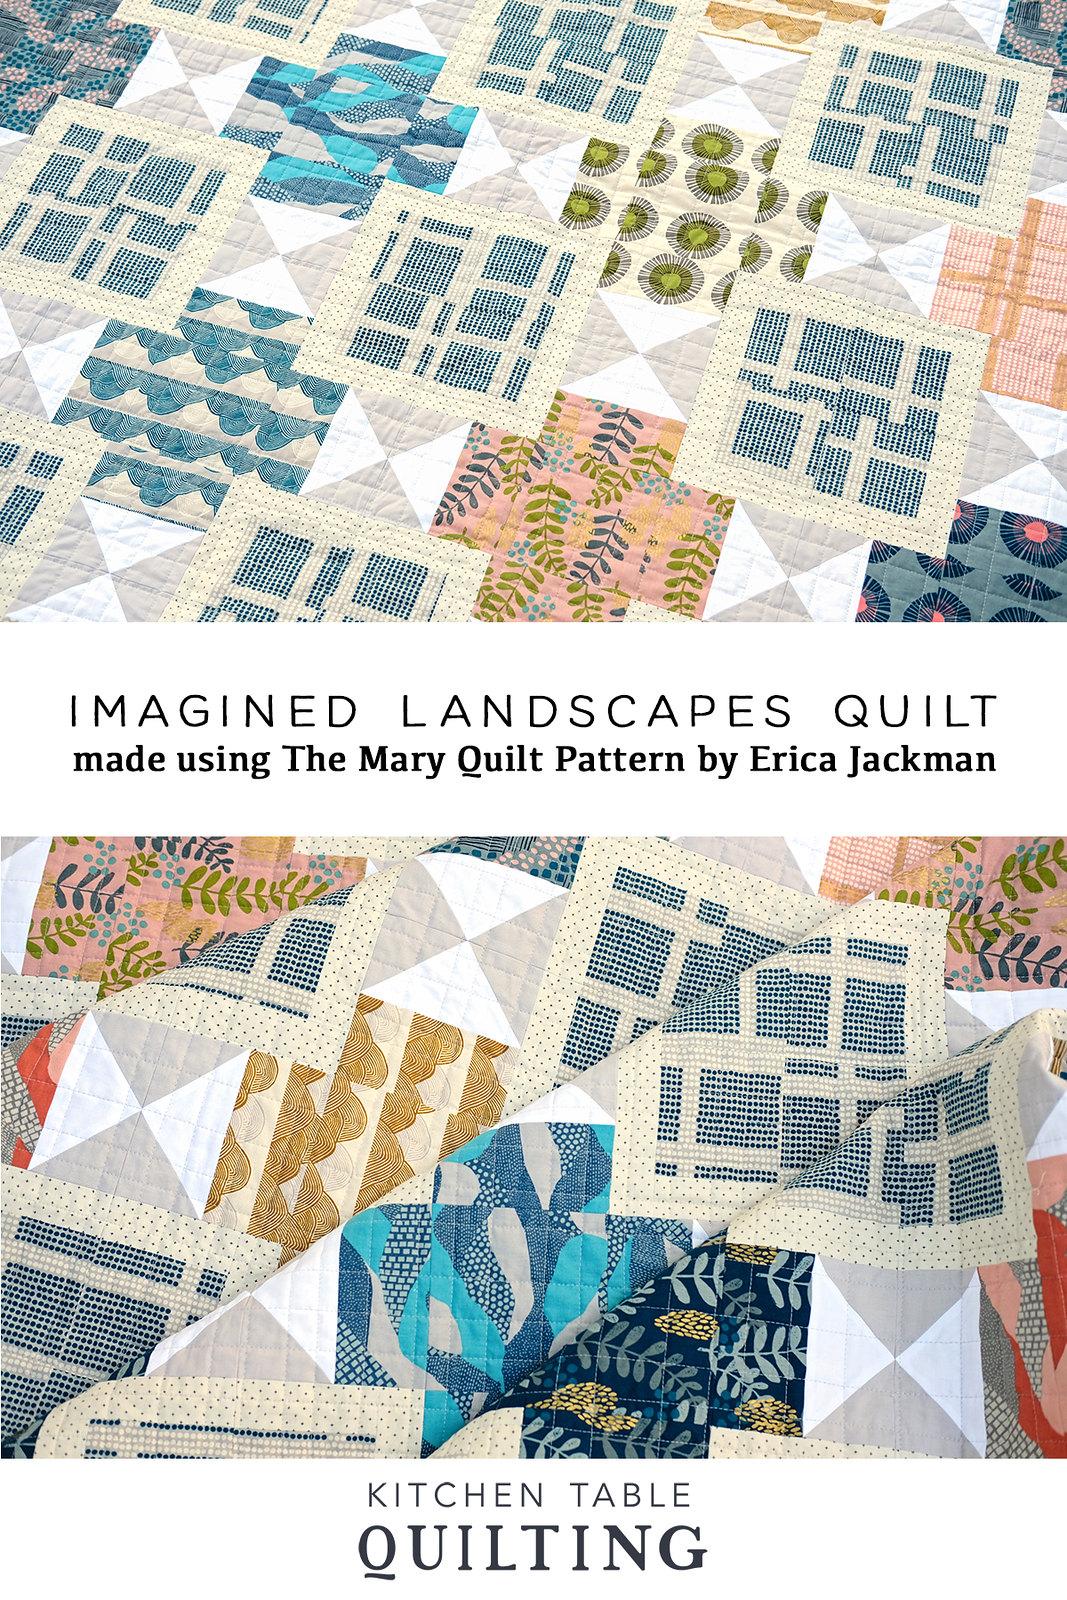 Imagined Landscapes - Kitchen Table Quilting